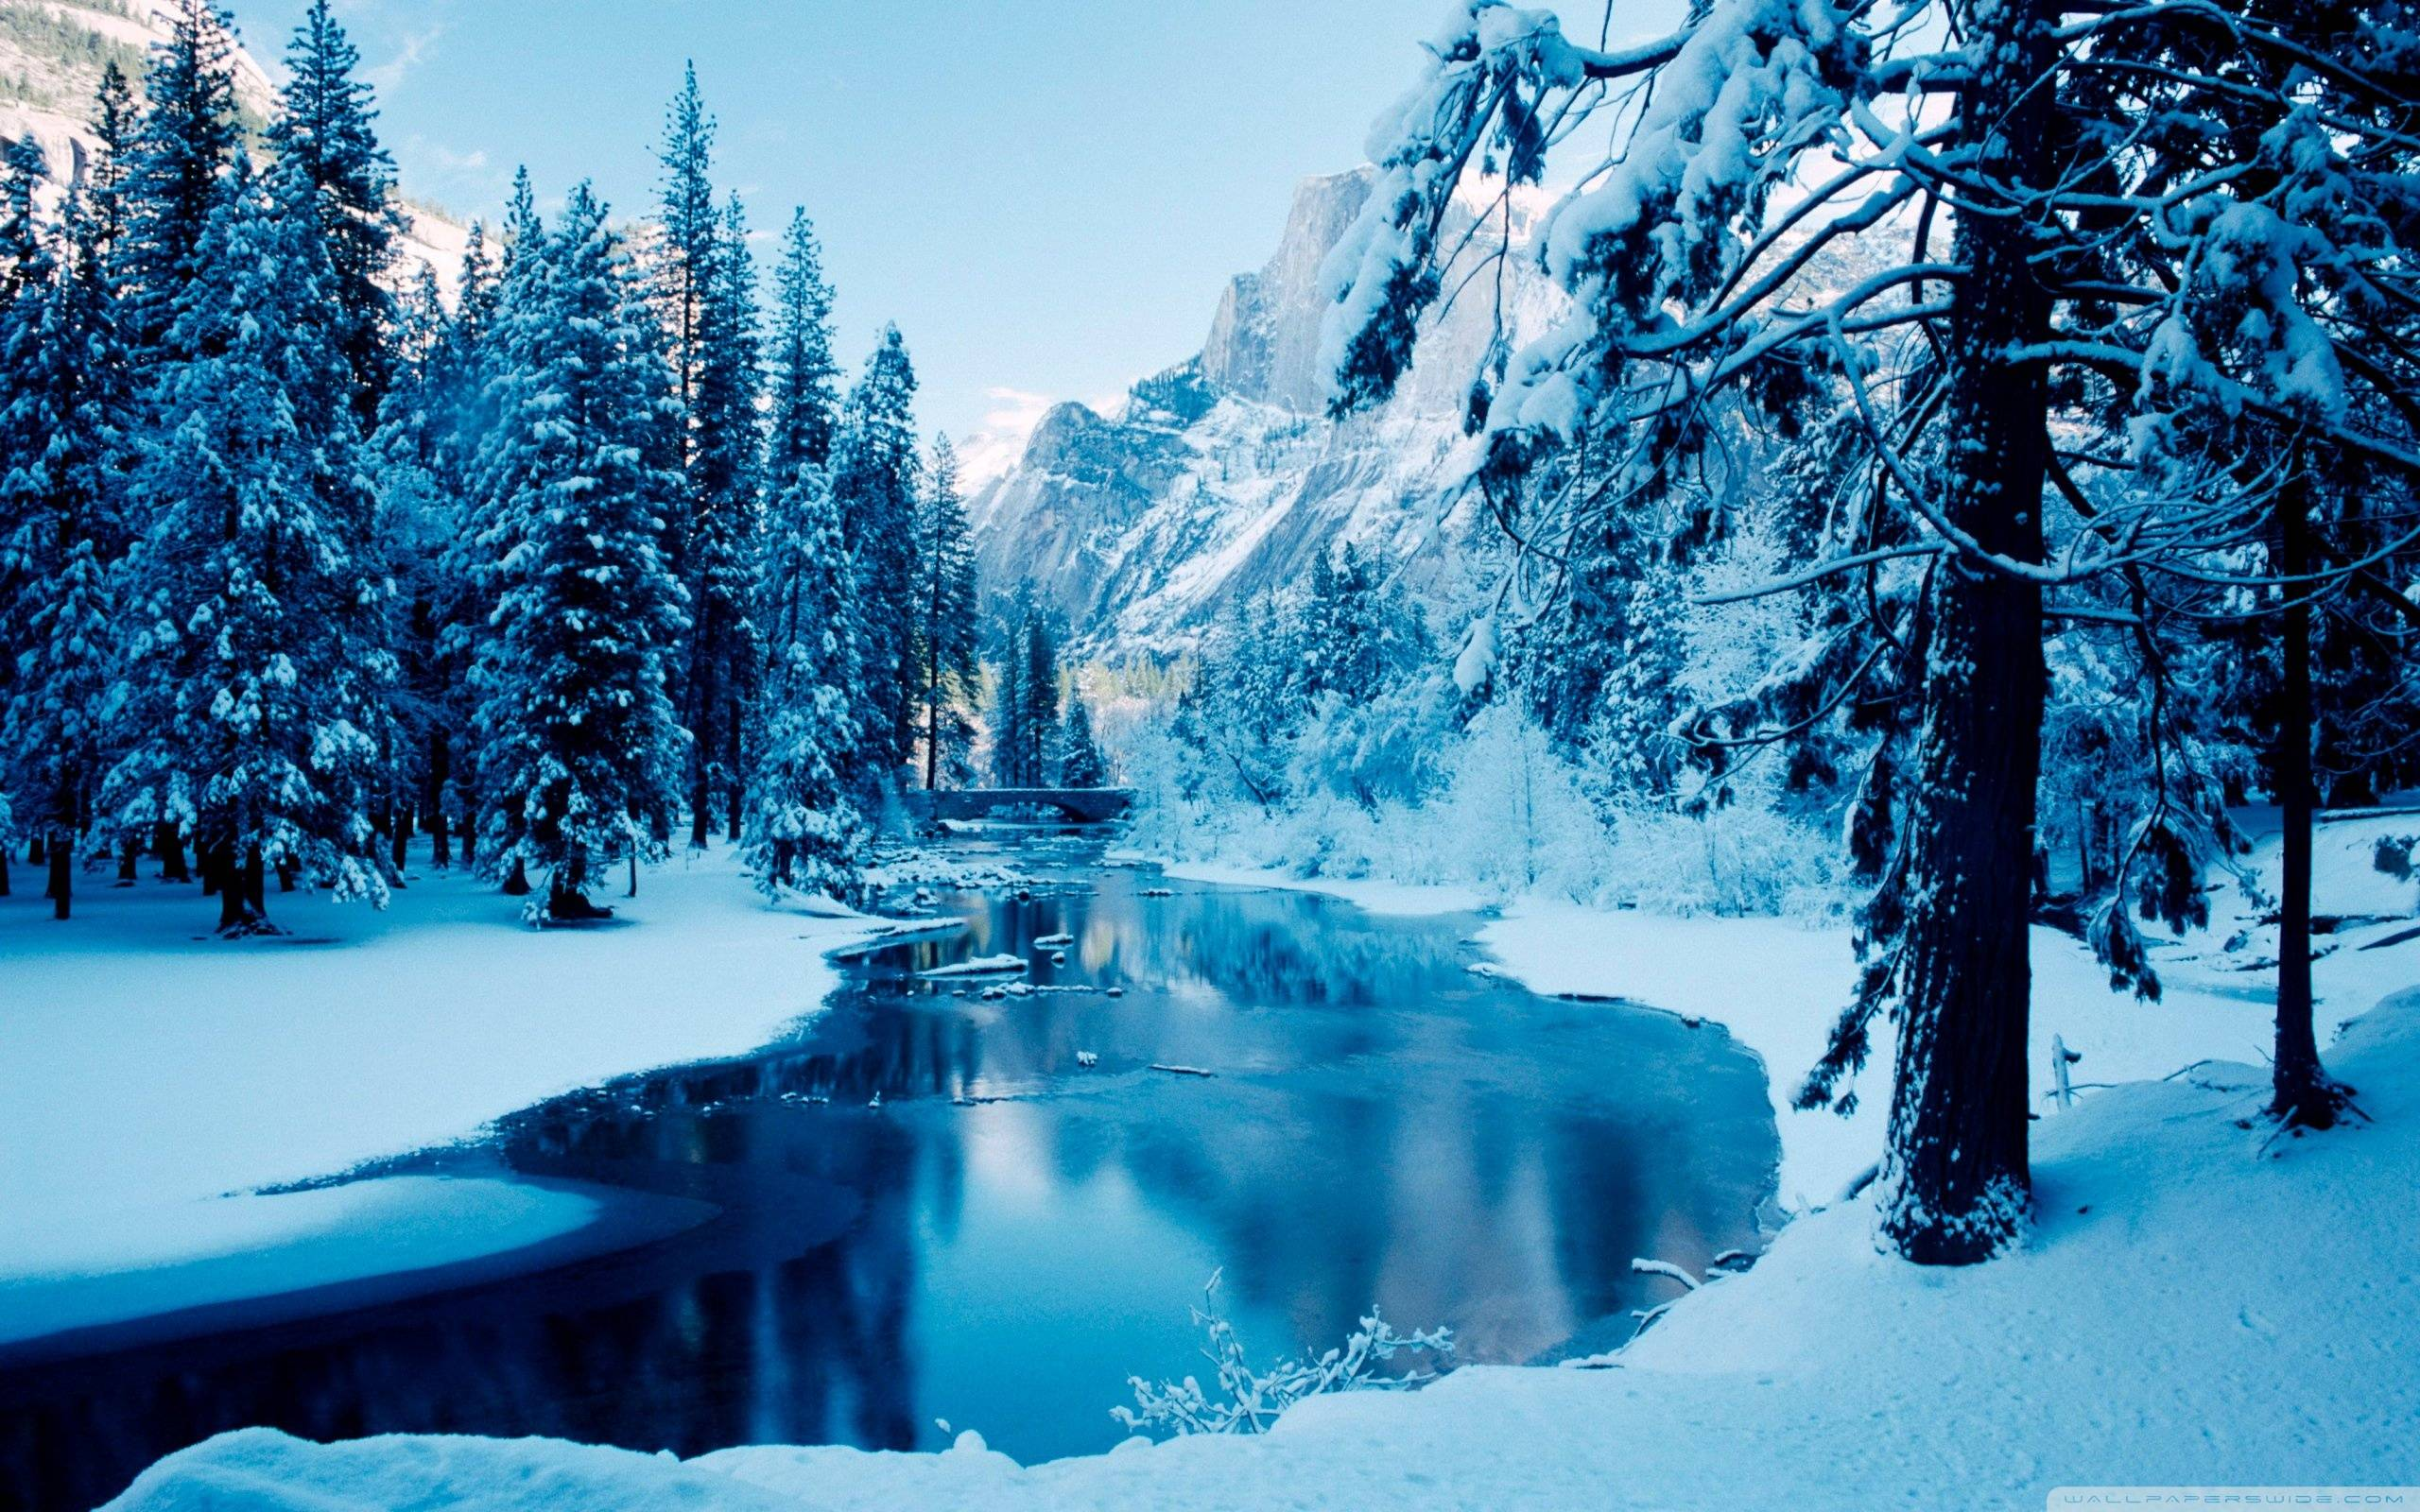 Winter Landscape Wallpaper